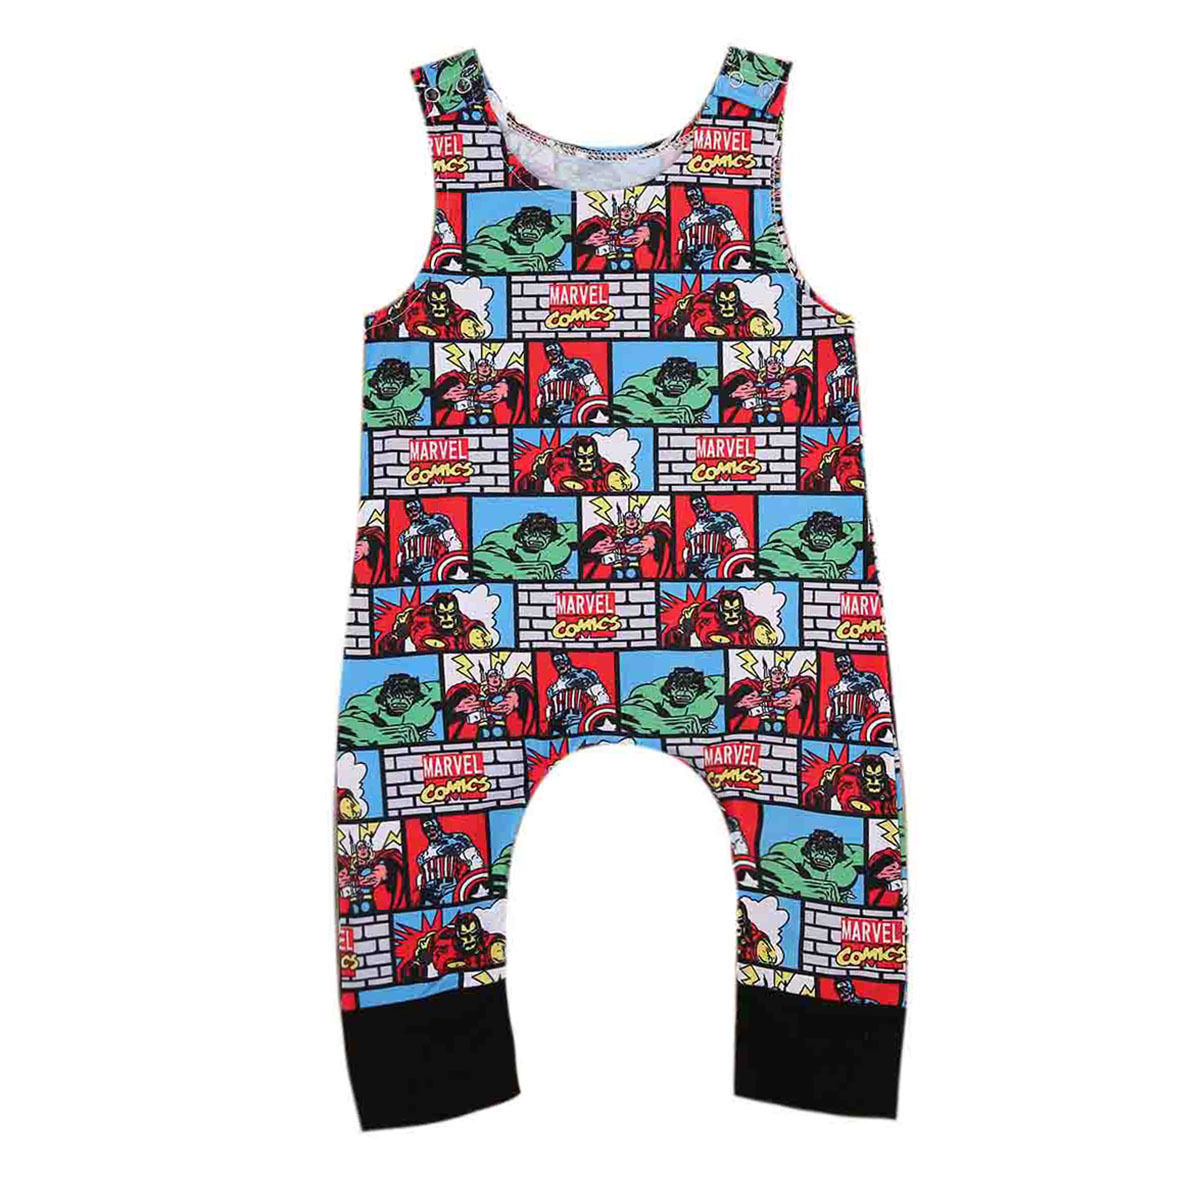 Cute Newborn Baby Rompers Summer Infant Boys Sleeveless Romper Cartoon Printed Jumper Cotton Blend Jumpsuit Kids Baby Outfits cotton i must go print newborn infant baby boys clothes summer short sleeve rompers jumpsuit baby romper clothing outfits set